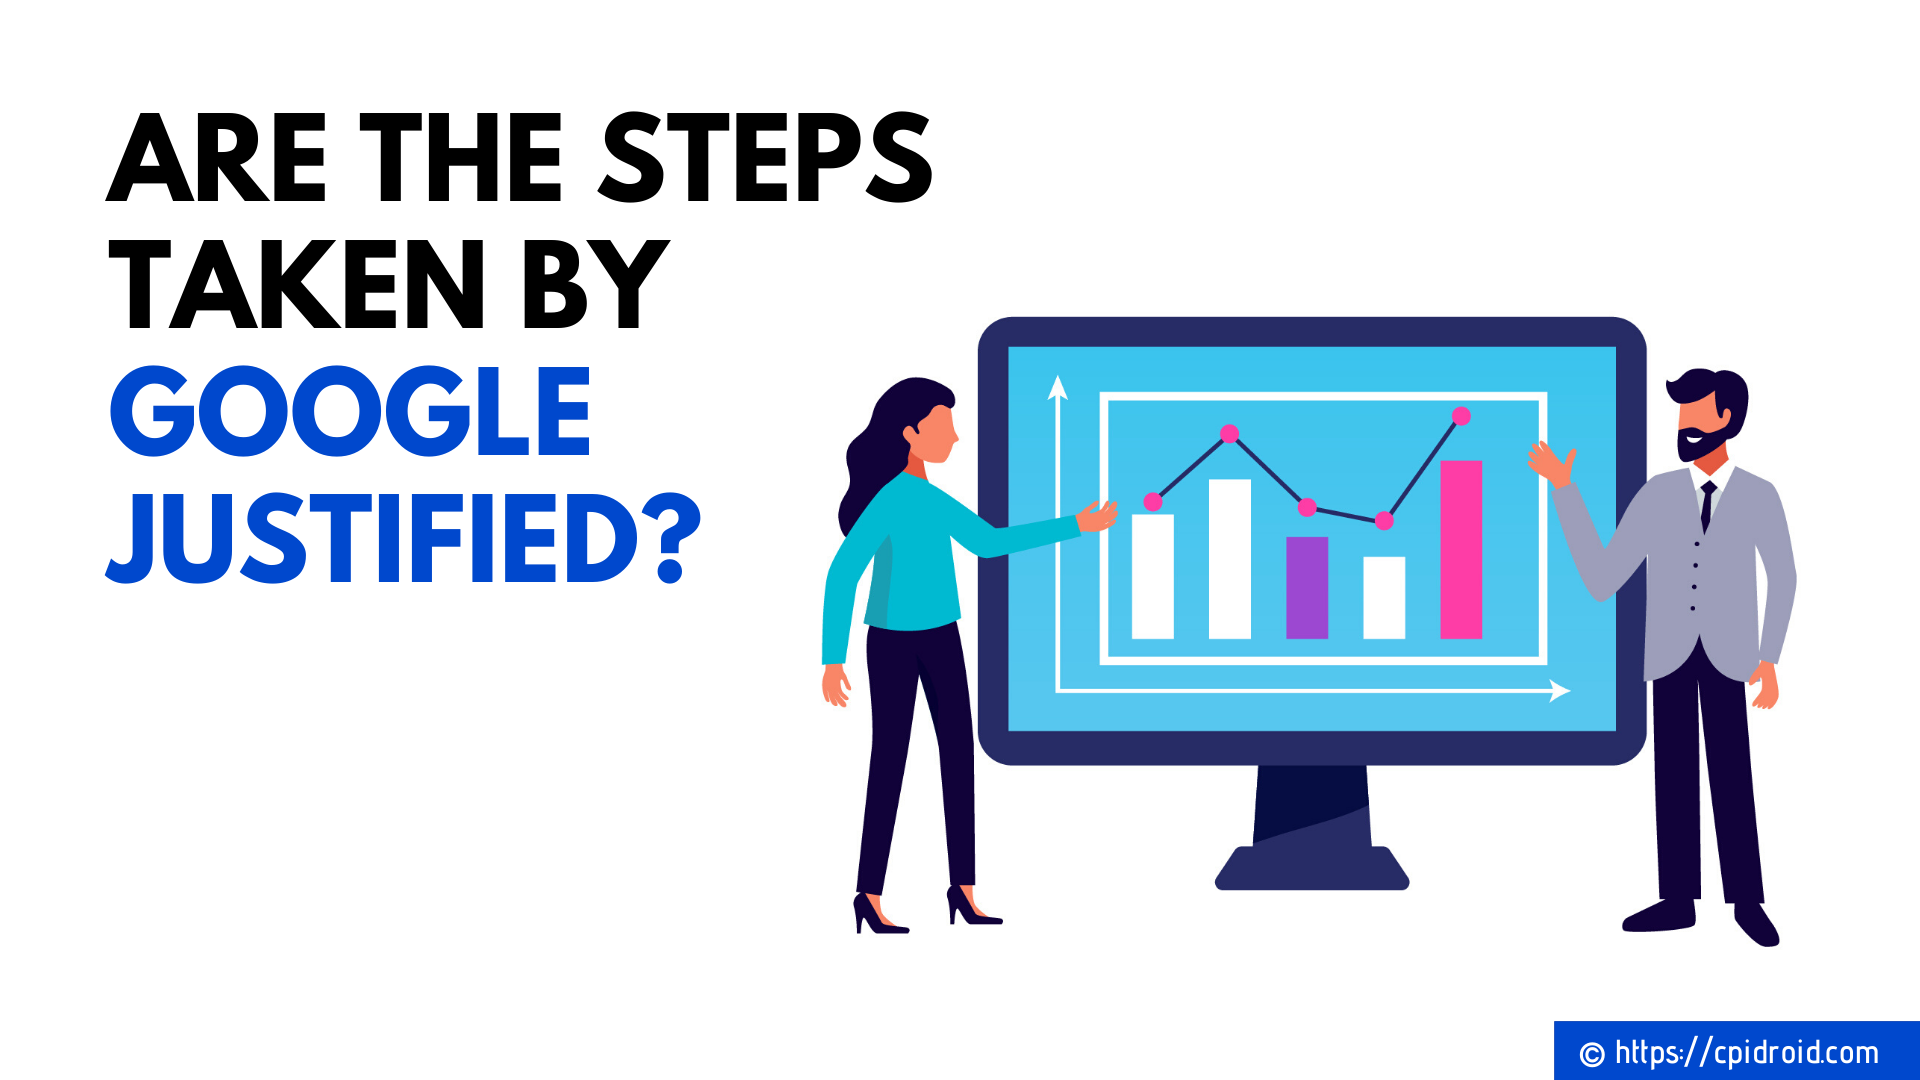 Are the steps taken by Google Justified?